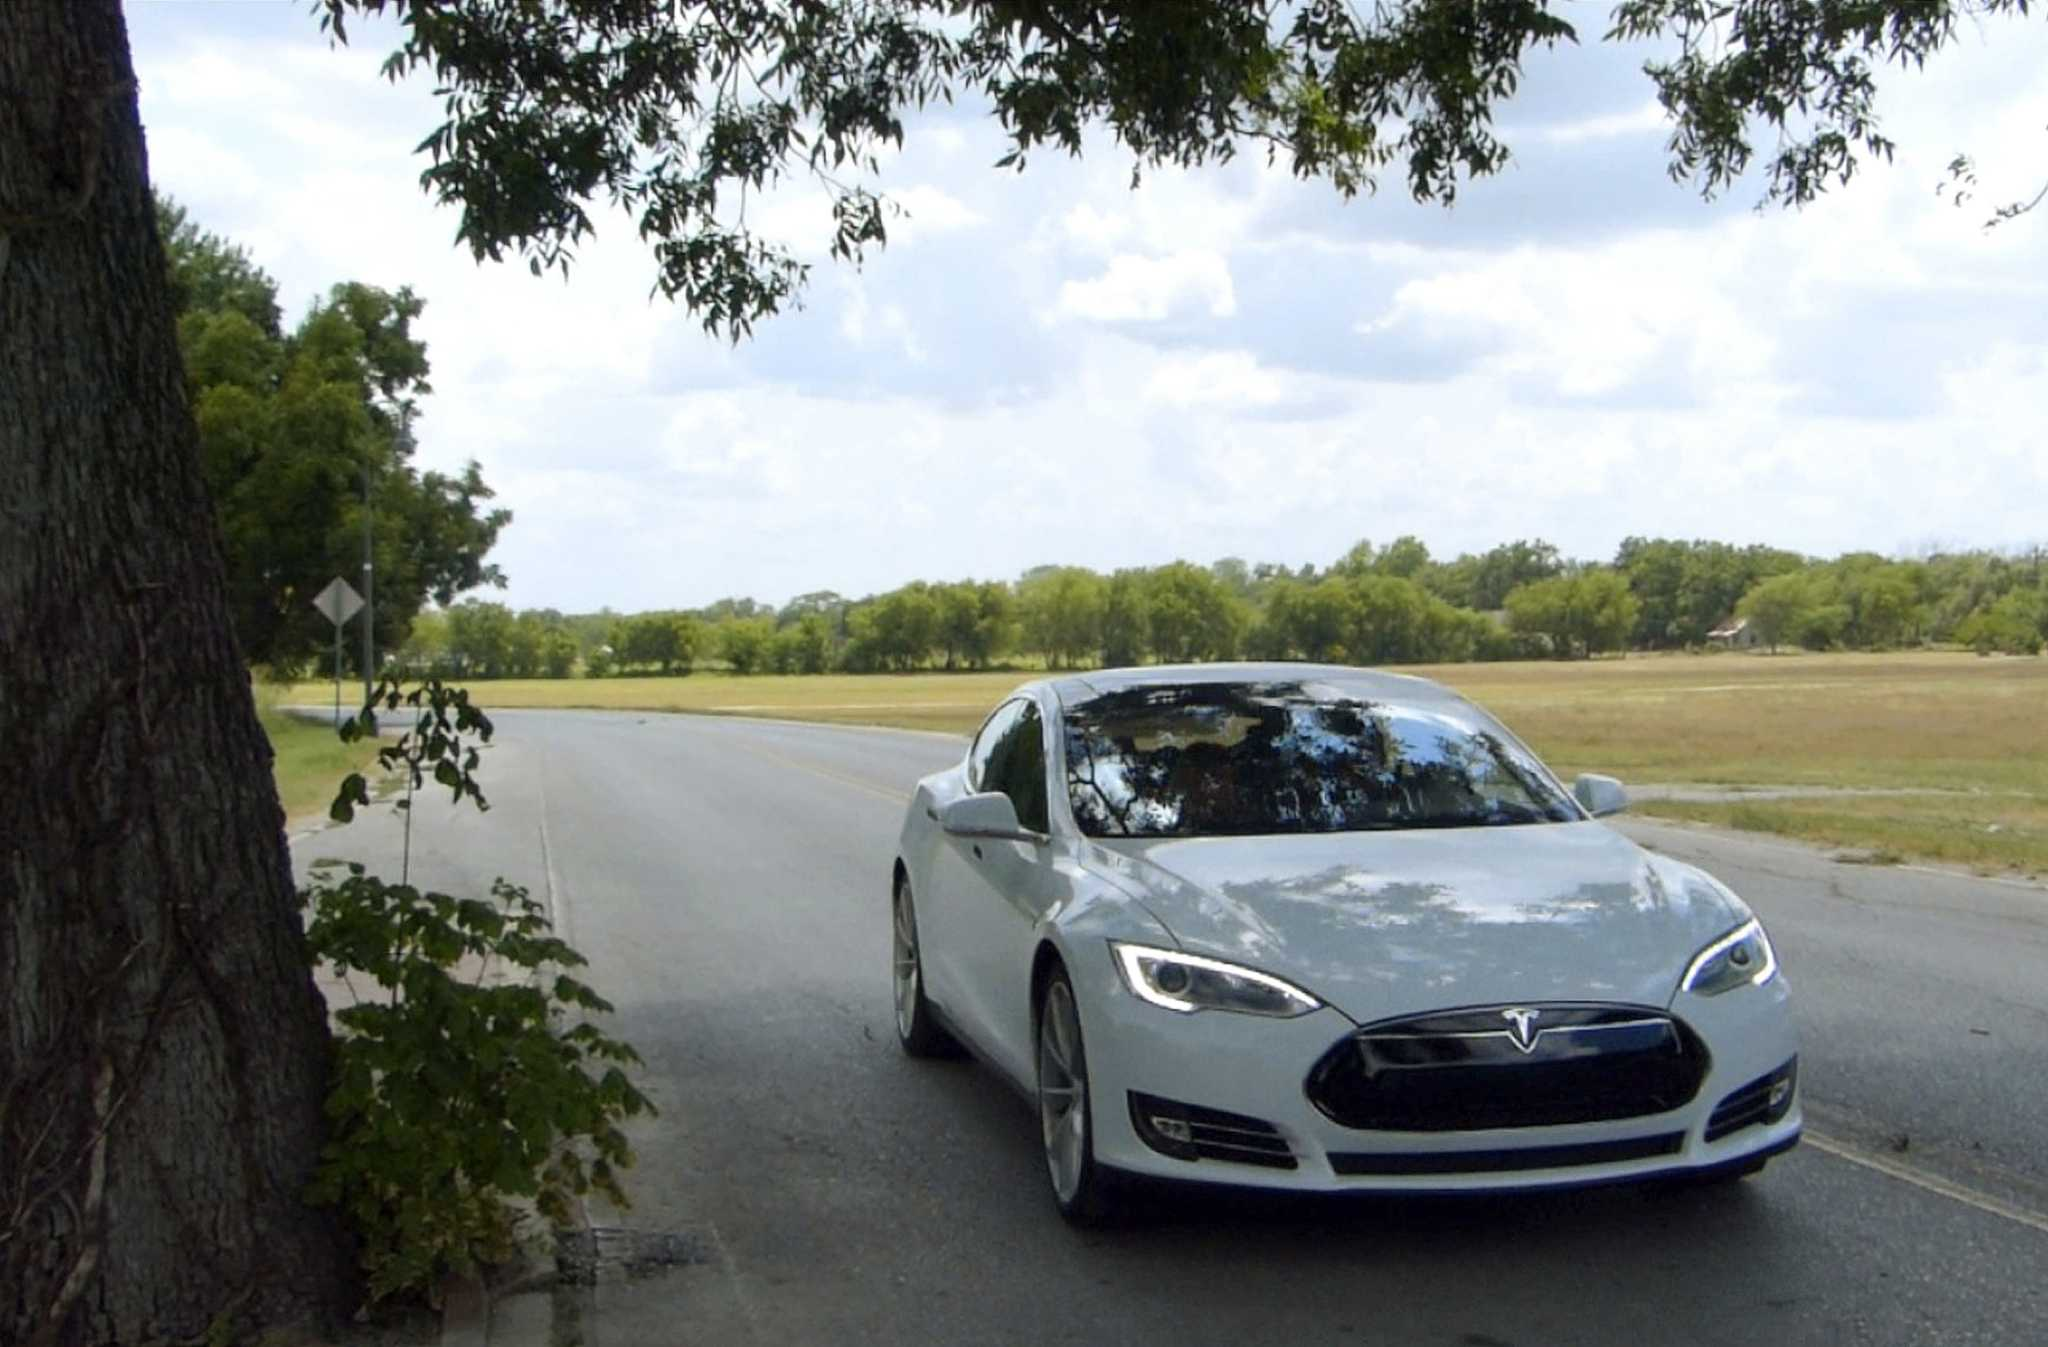 tesla electric cars leading the way in Model s is the safest, quickest car on the road—with industry-leading performance, range and storage  tesla's all-electric powertrain delivers unparalleled performance—with instant responsiveness and the quickest acceleration on earth, from zero to 60 mph in as little as 25 seconds.